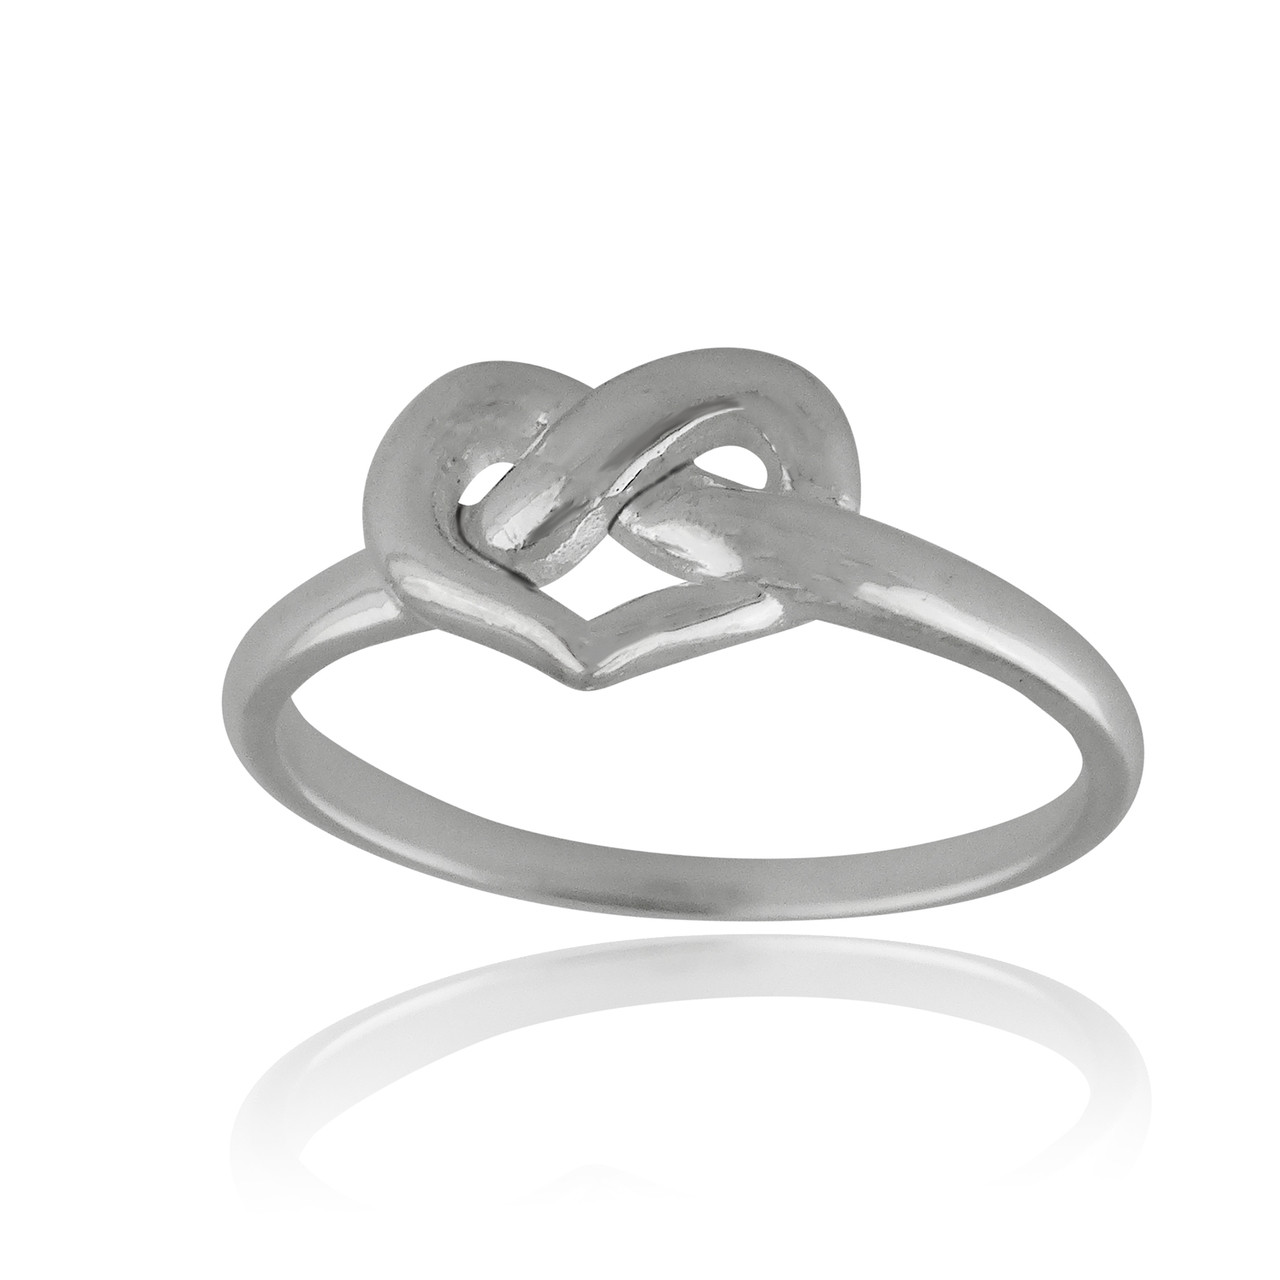 3a86bc7ac0dfb Heart Knot Ring - 925 Sterling Silver - Promise Ring Infinity Infinite Knot  NEW